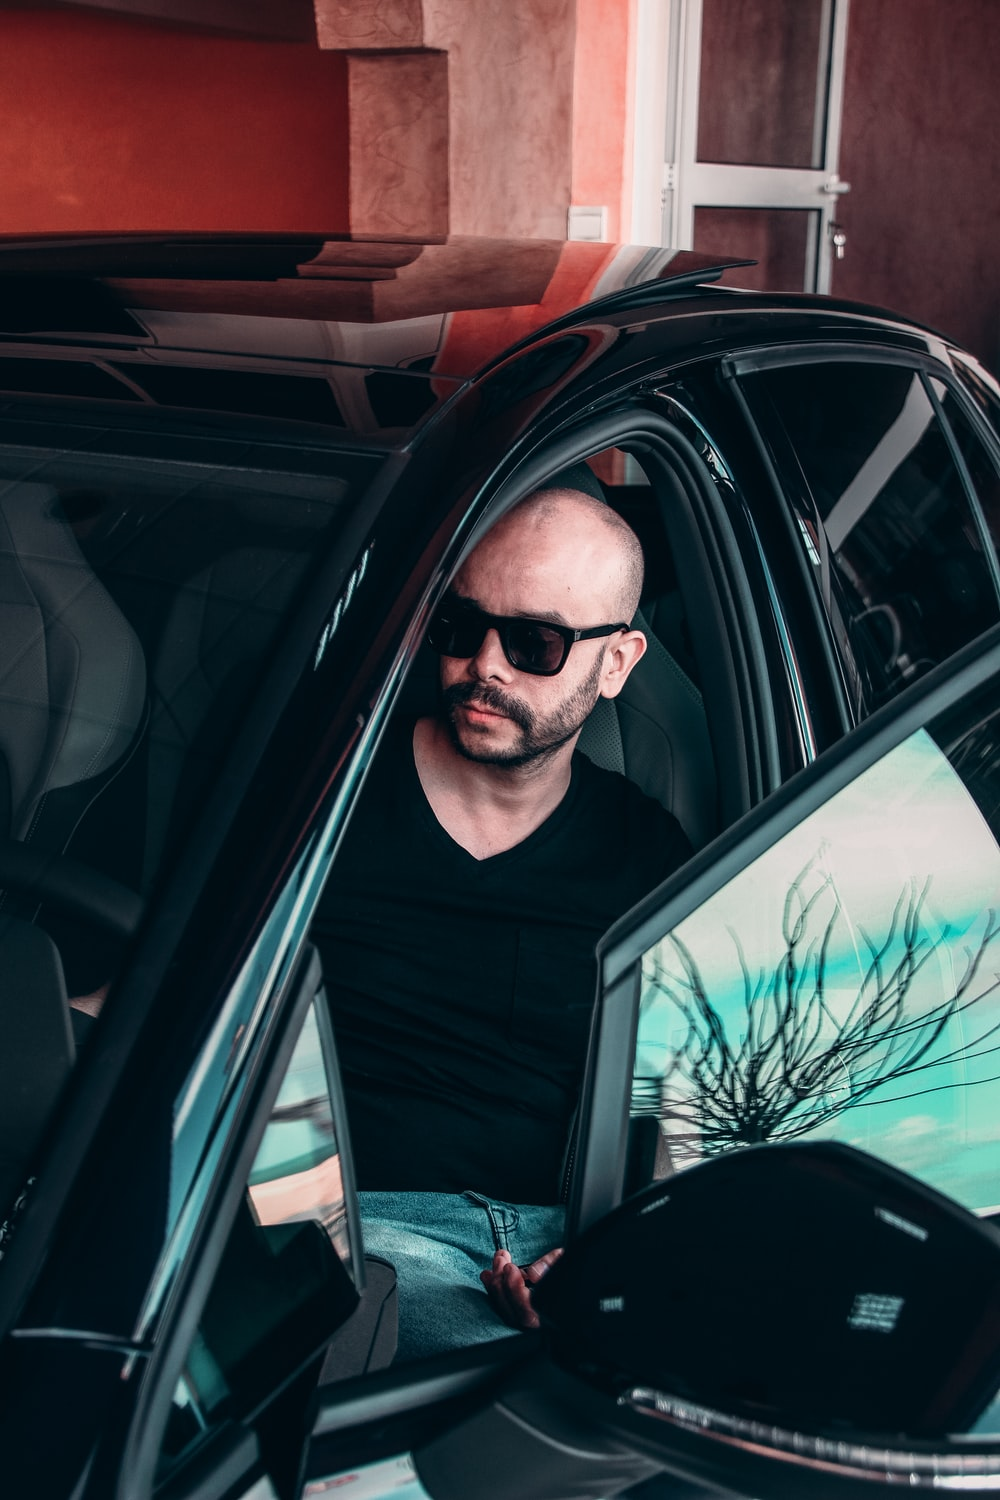 man in black v neck shirt wearing black sunglasses inside car